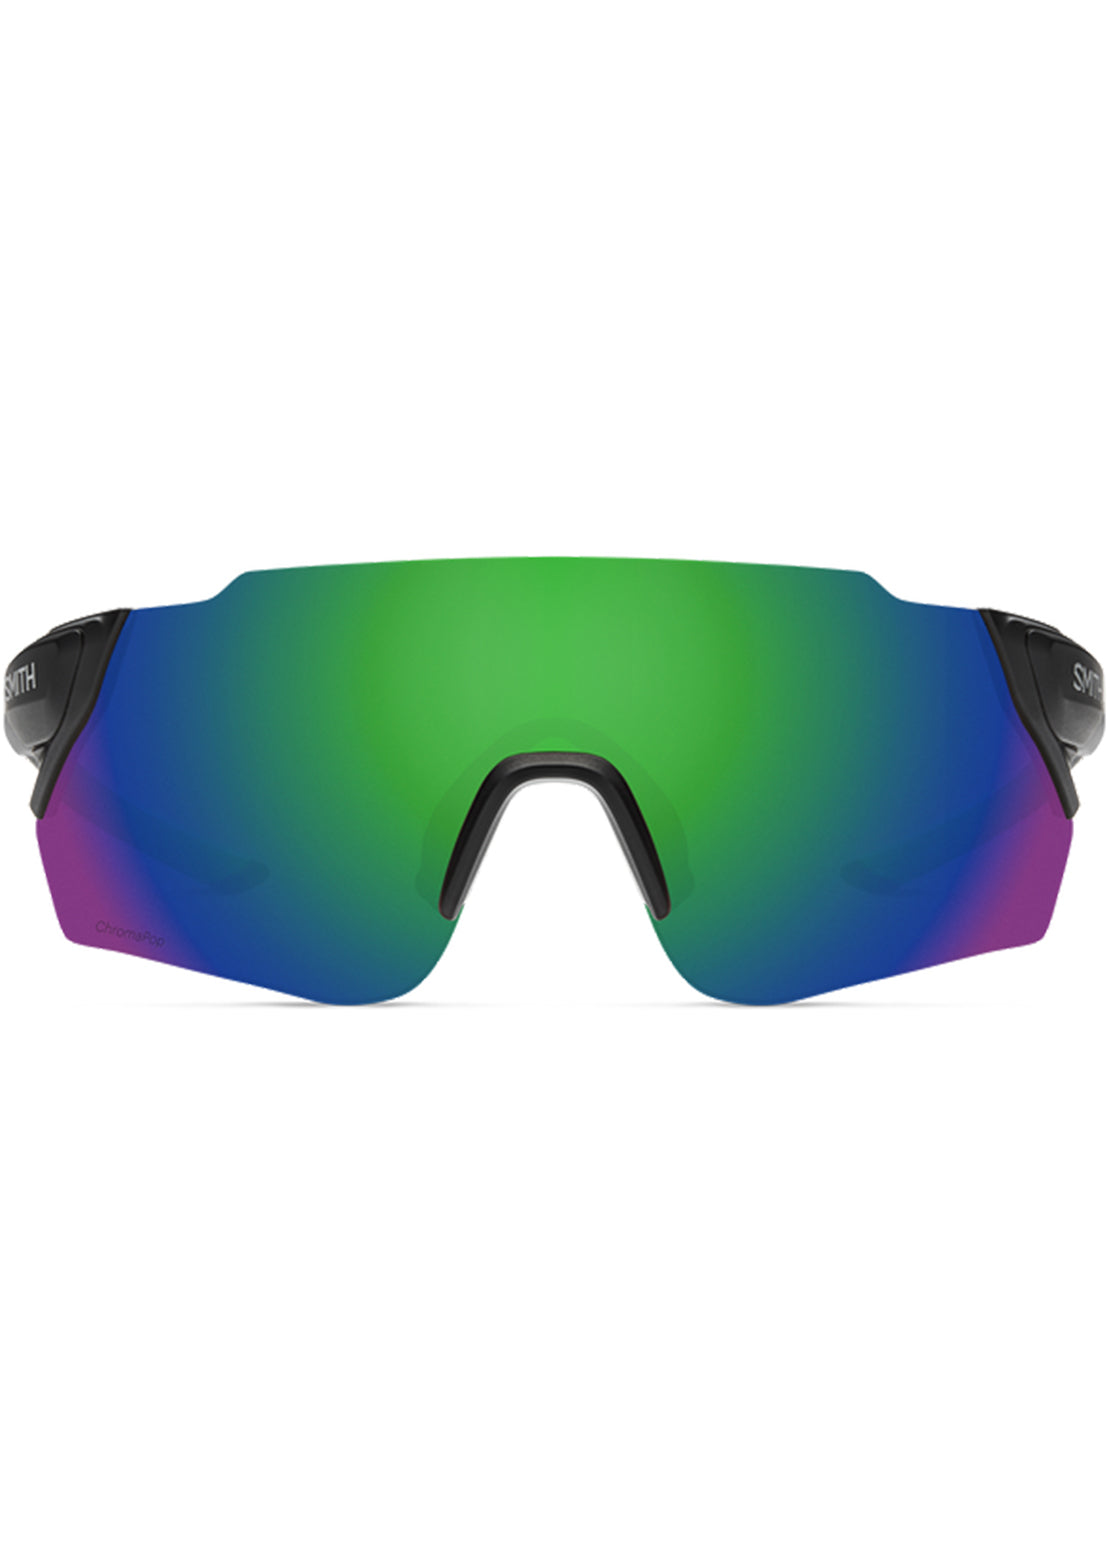 Smith Attack Mag Max Bike Sunglasses Matte Black Reactor/Chromapop Green Mirror